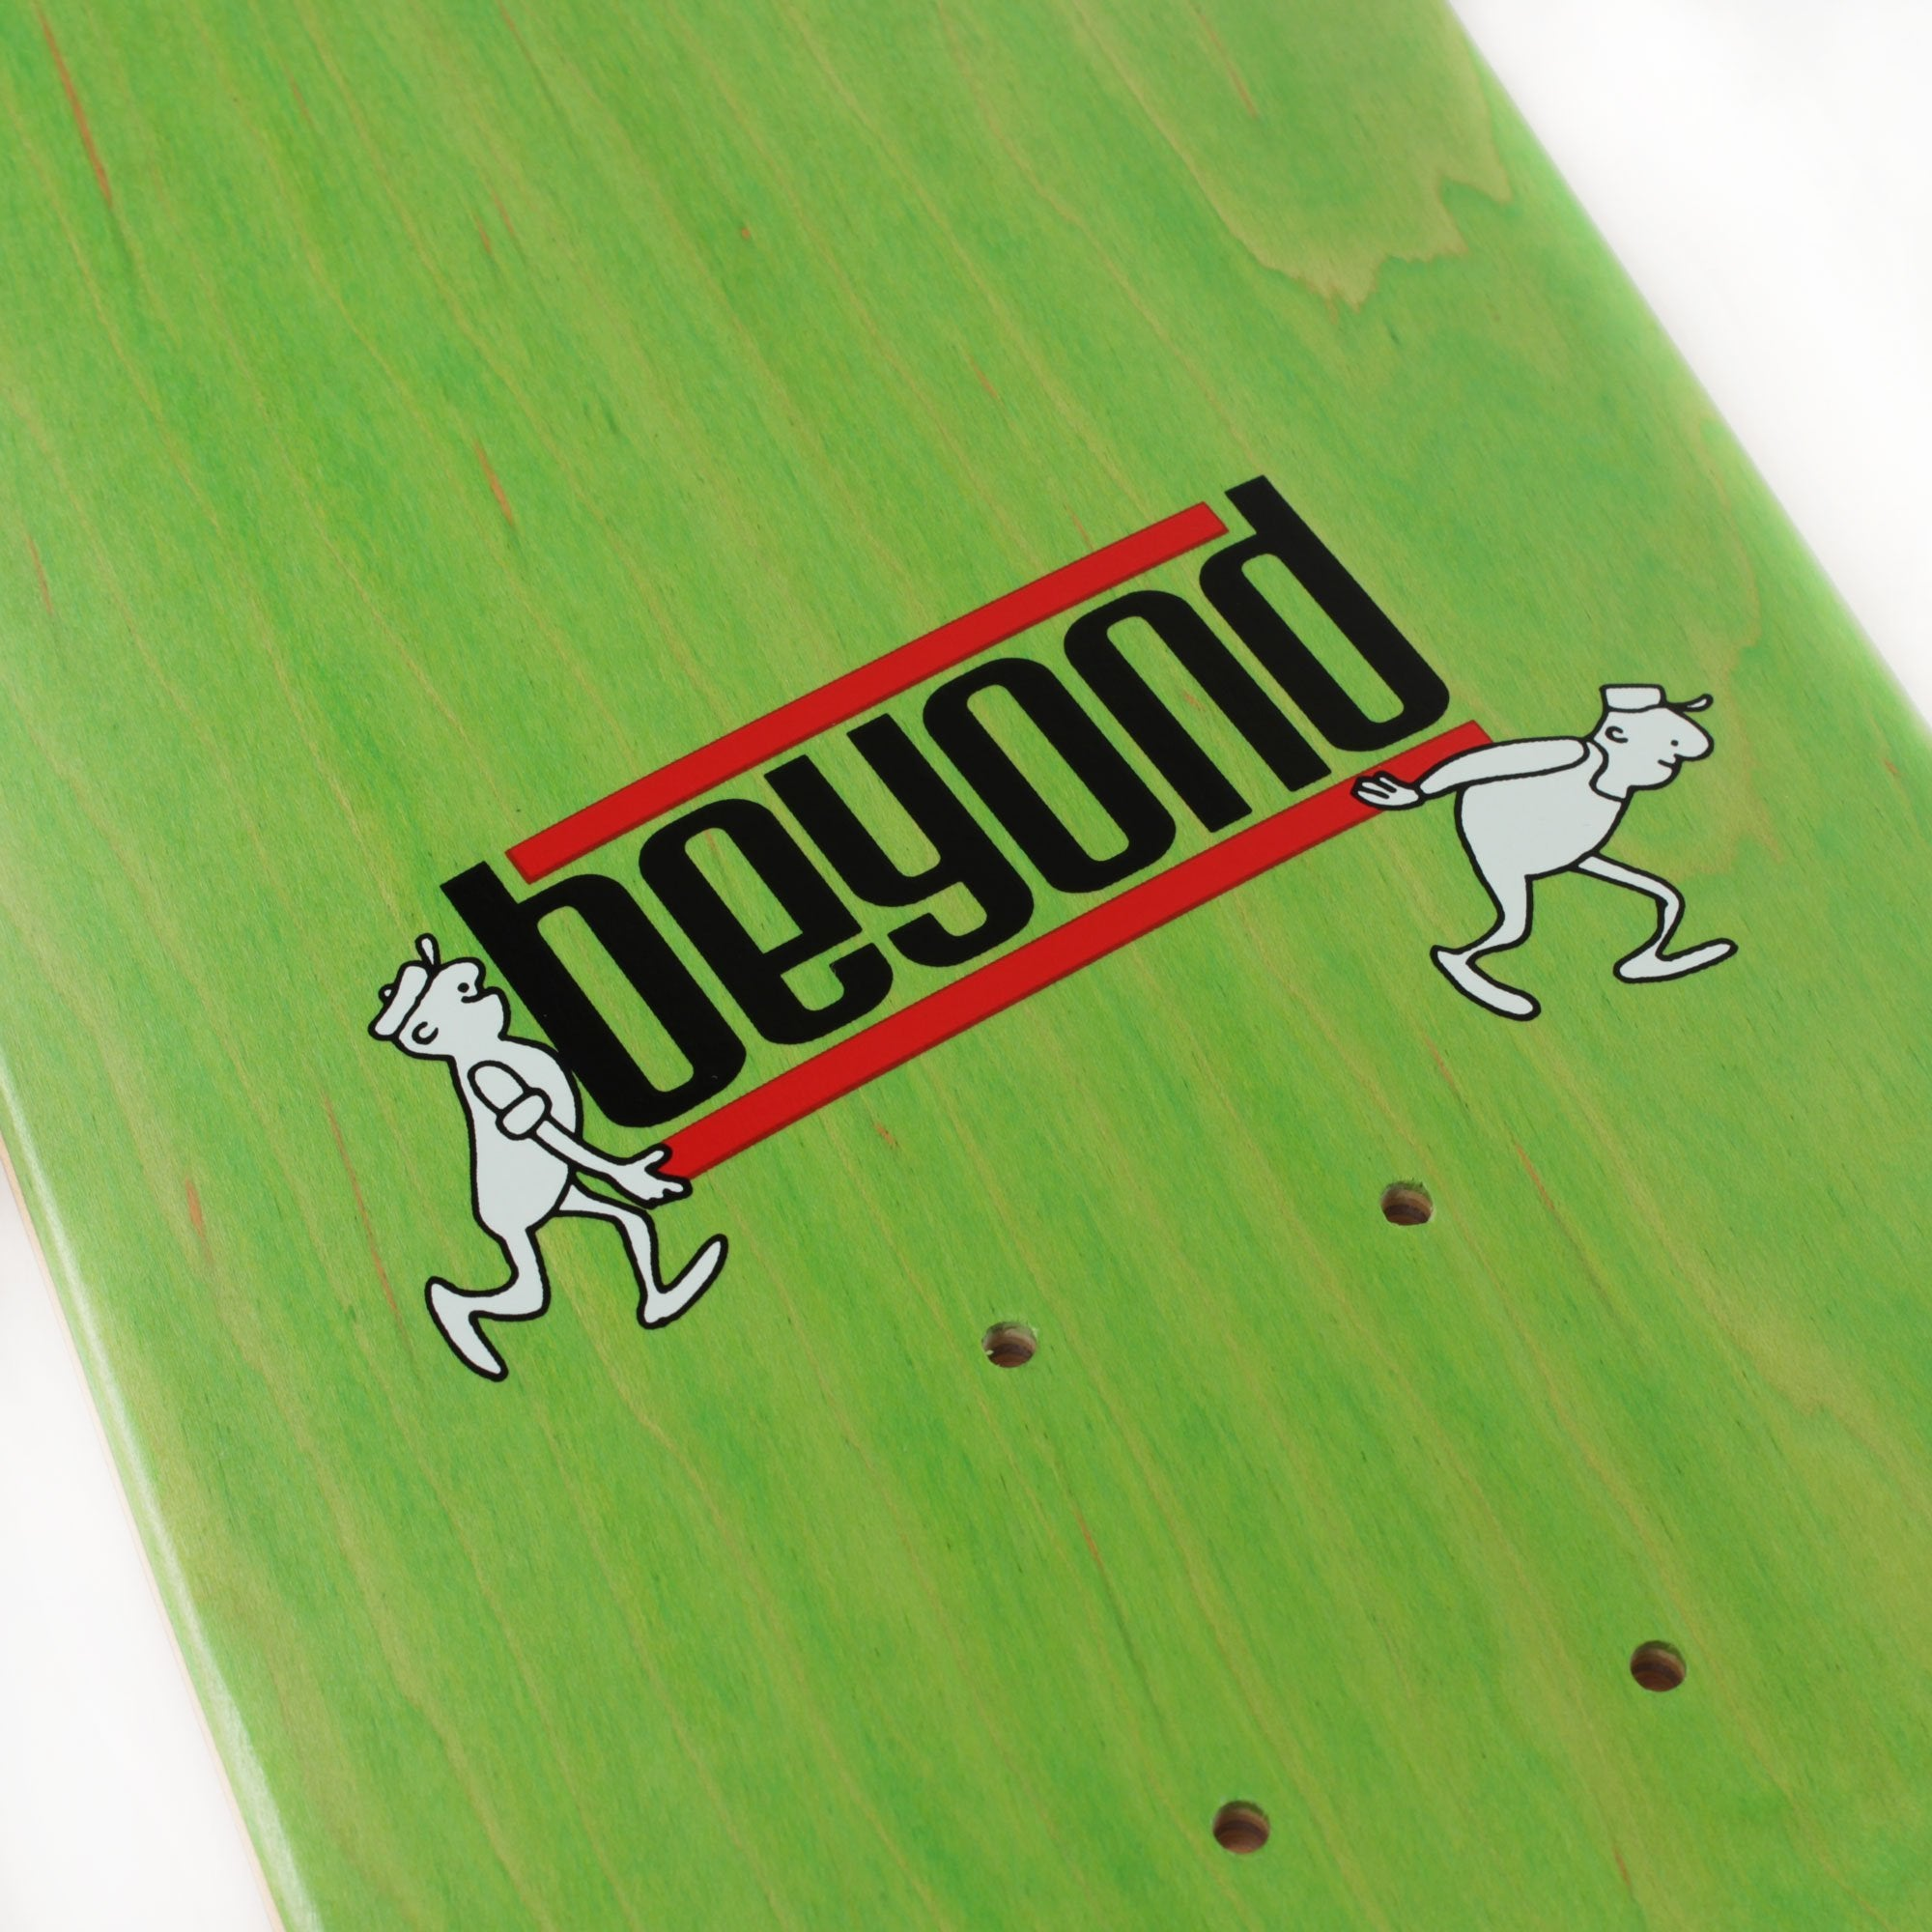 Beyond Moving Men Deck Product Photo #6